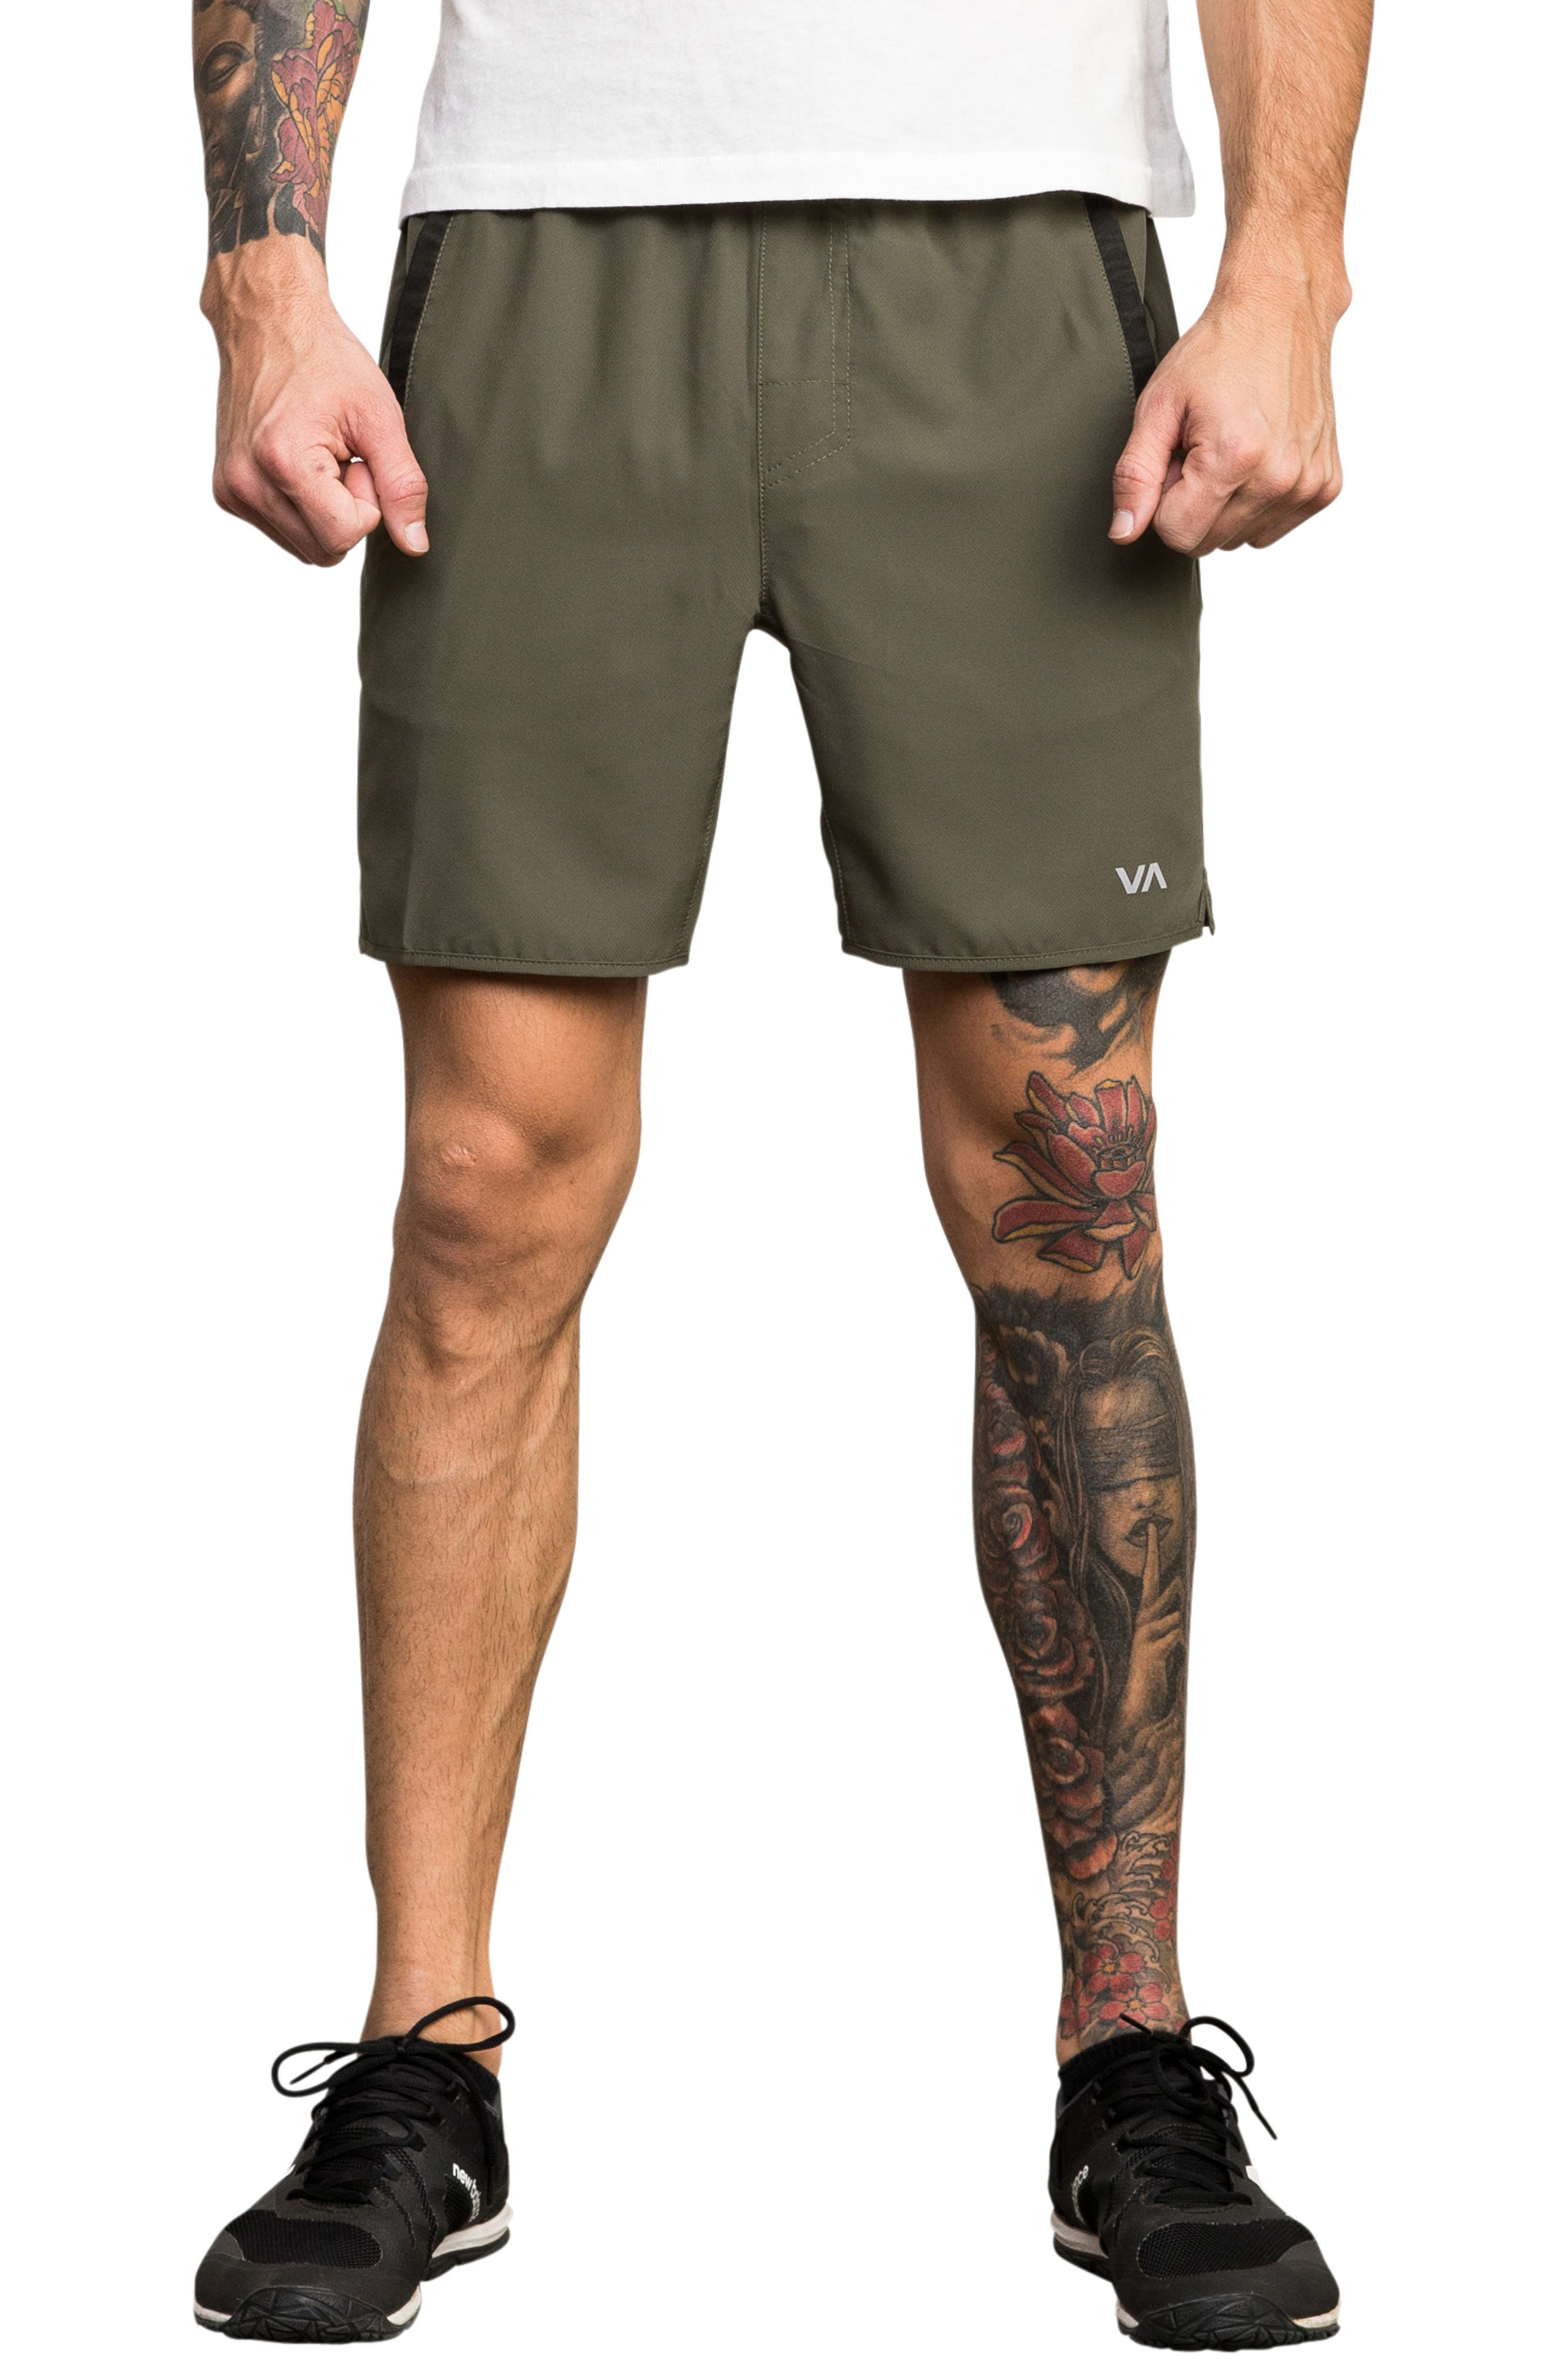 Yogger III Athletic Shorts,                             Main thumbnail 1, color,                             OLIVE